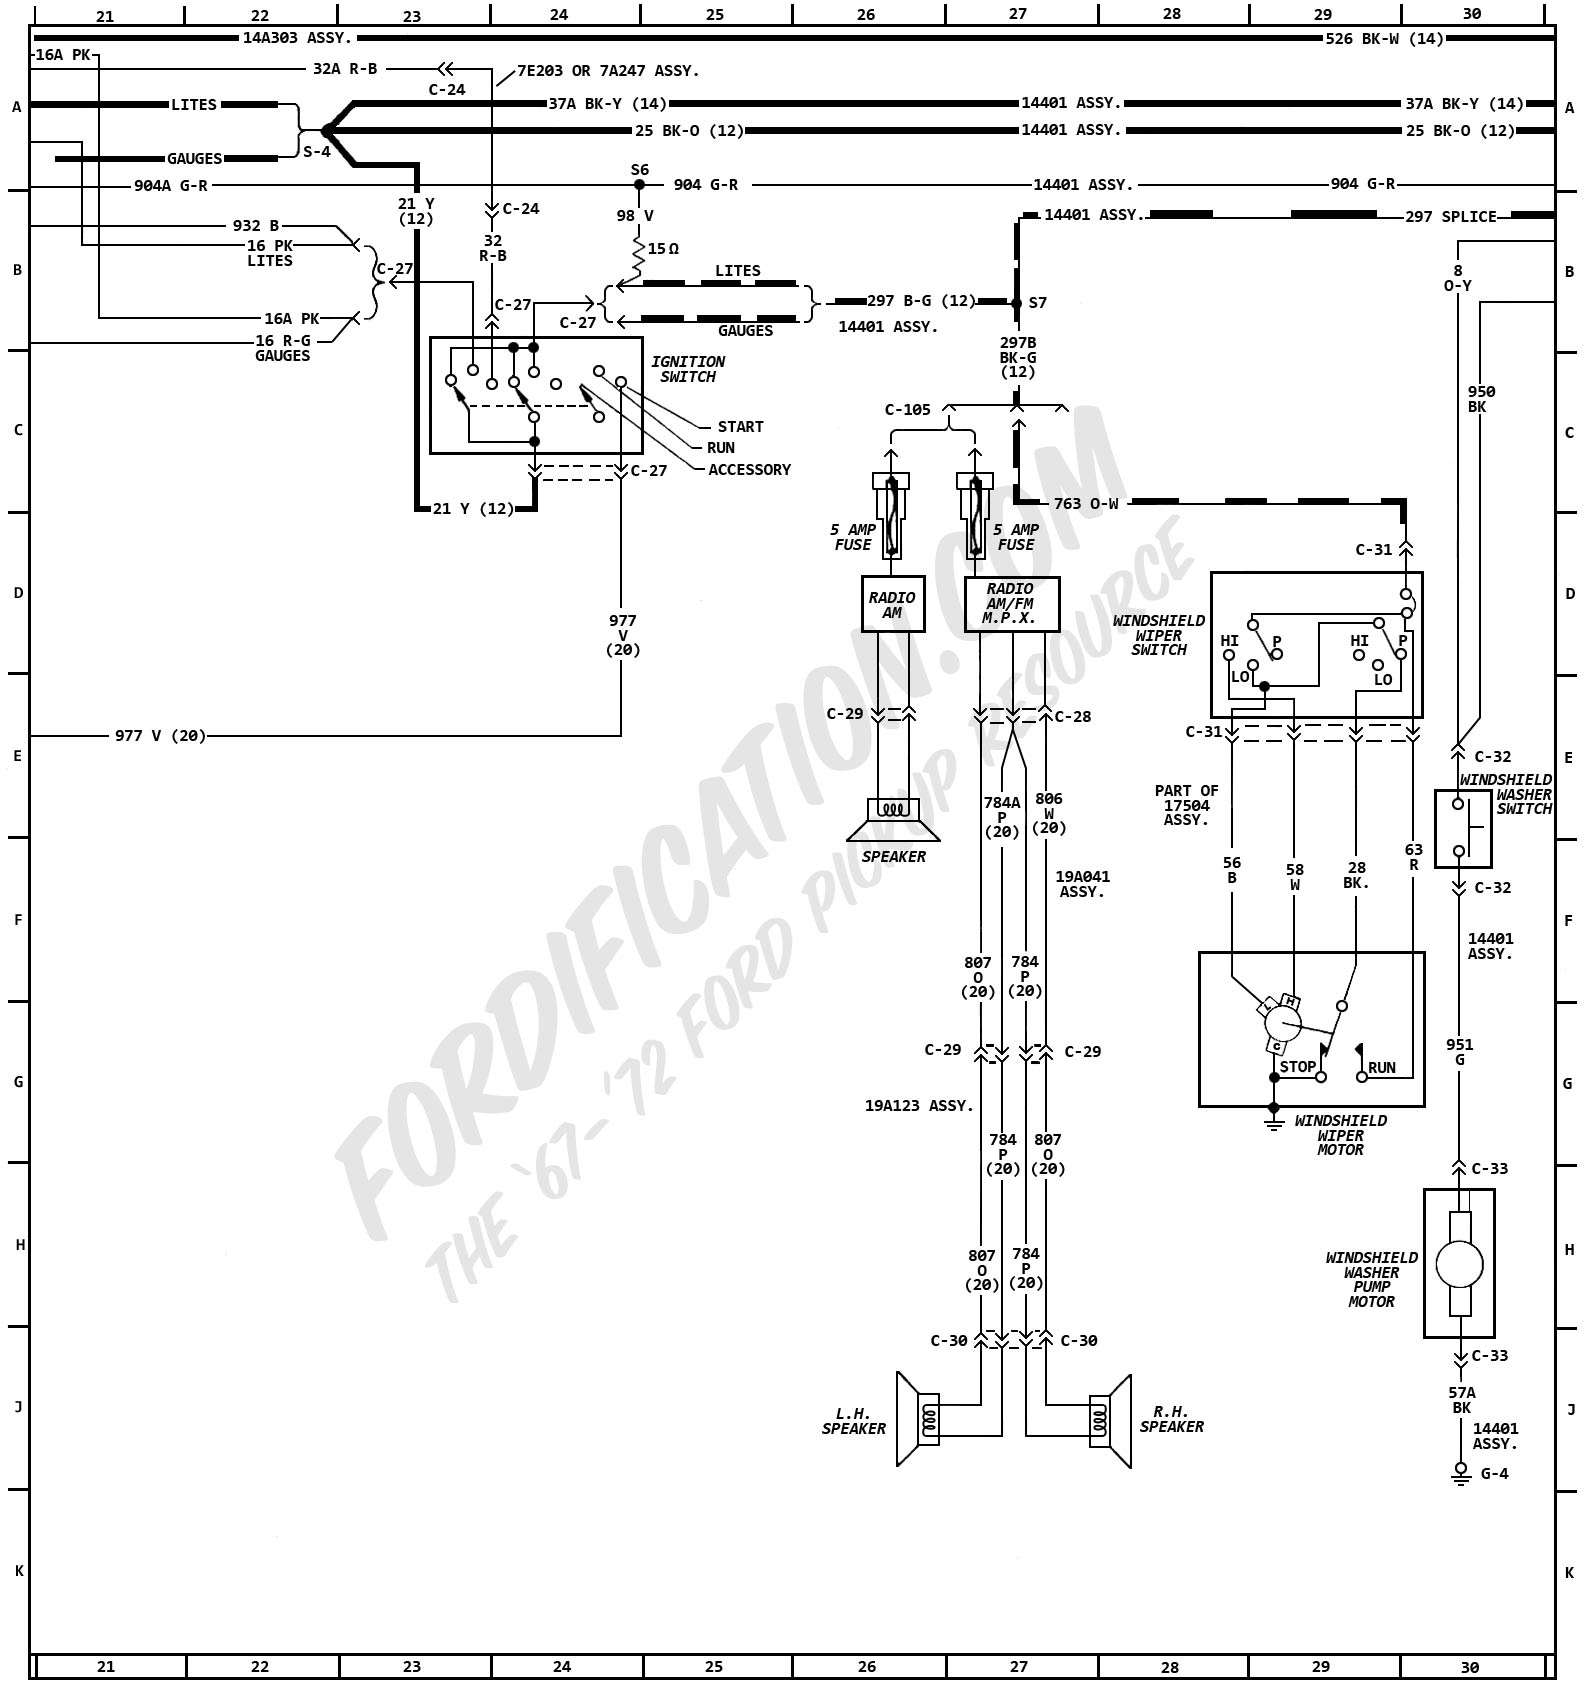 1952 Willys Wagon Wiring Diagram - Wiring Diagrams Dock